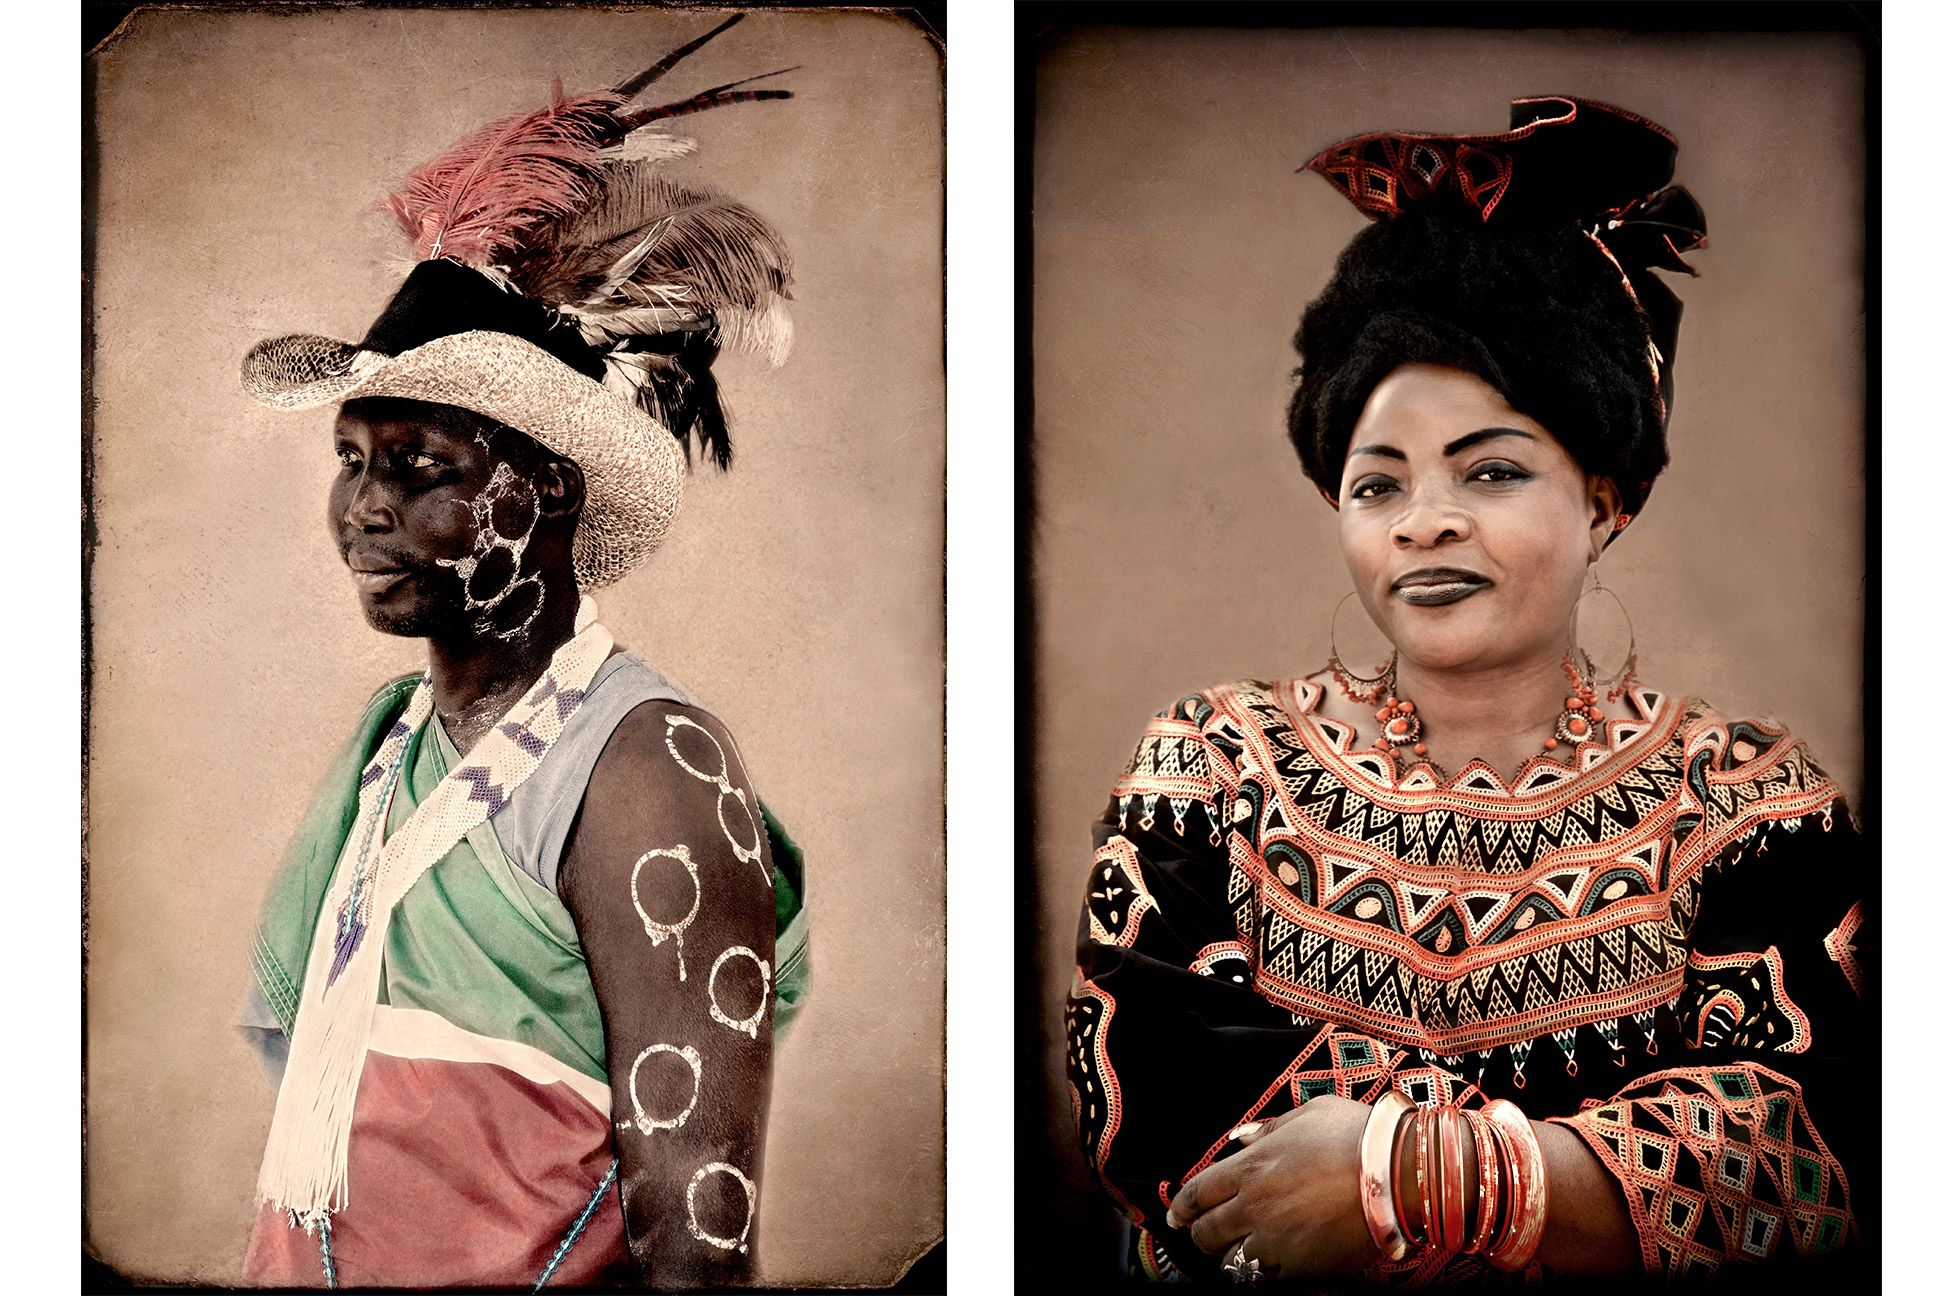 Julius-South Sudanese Heritage, Edith-Cameroonian Heritage